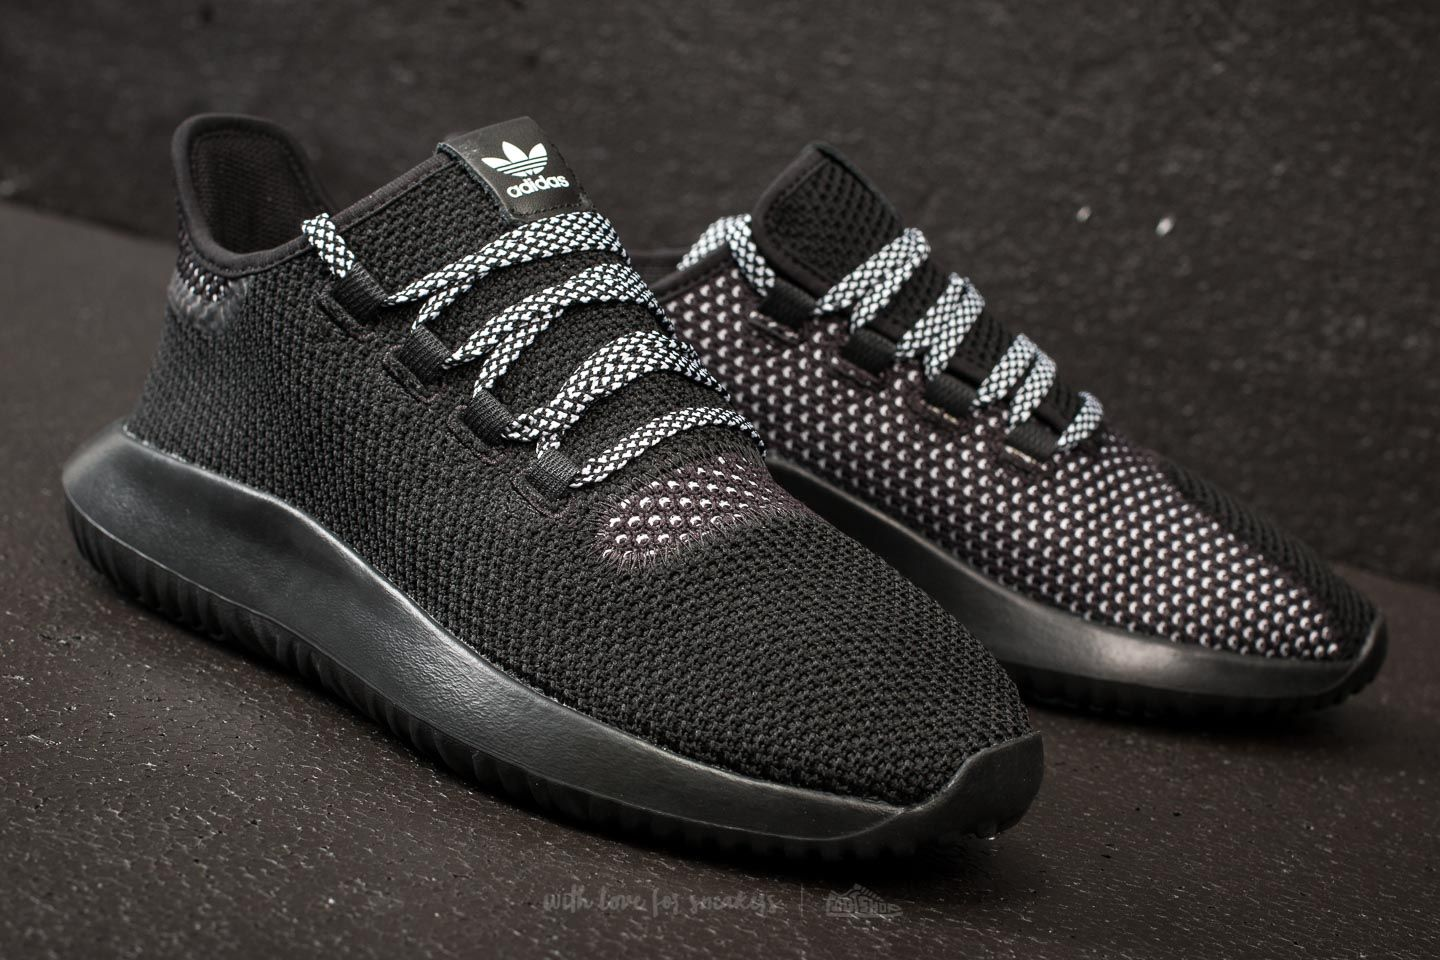 usa adidas tubular shadow ck core black core black ftw white at a great  price d0254 48f64cbc2